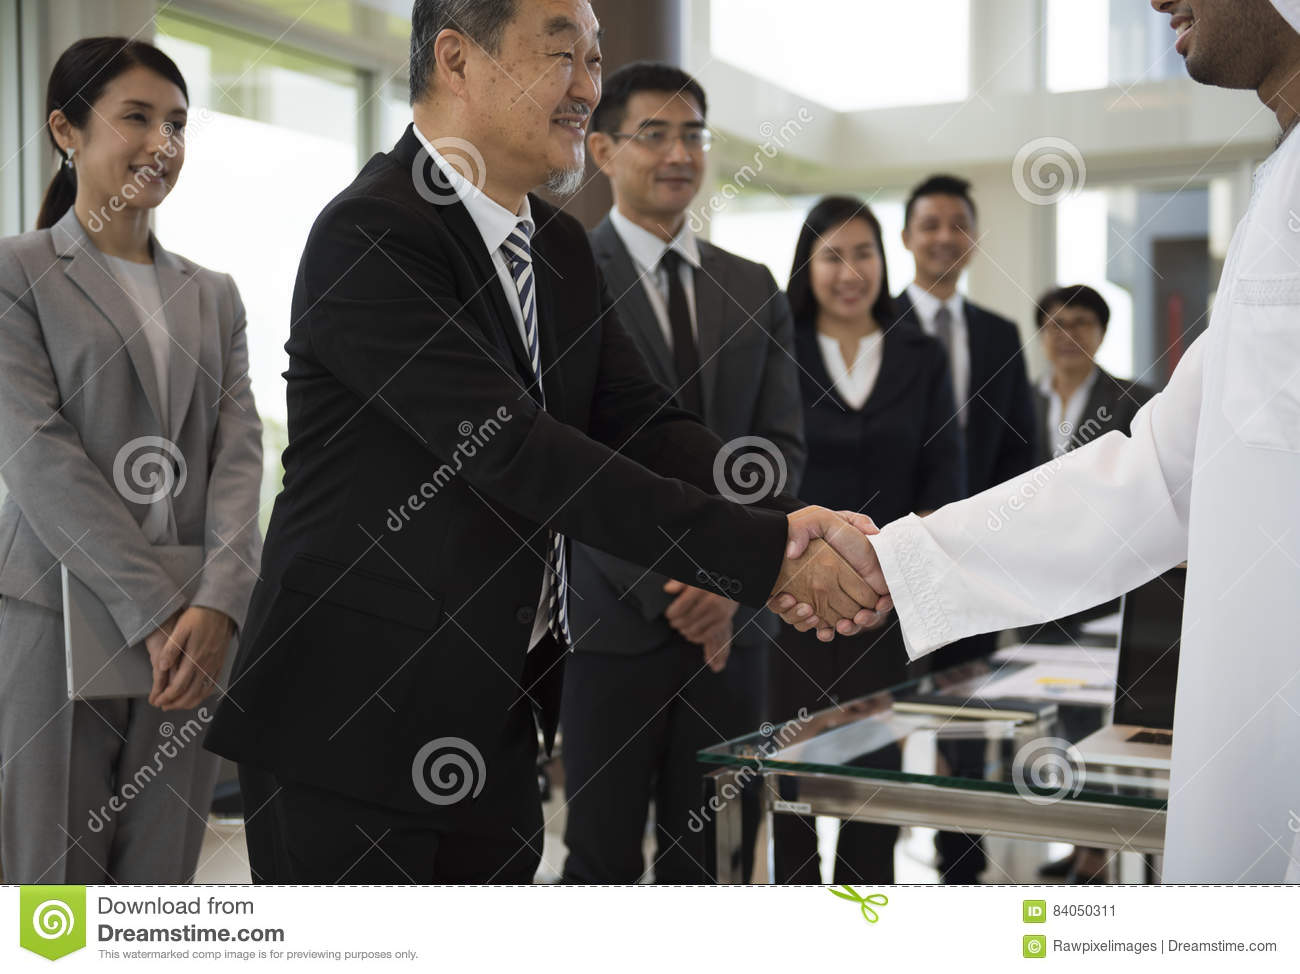 Business people handshake greeting deal at work photo free download - Business Partners Introduction Handshake Bow Stock Photo